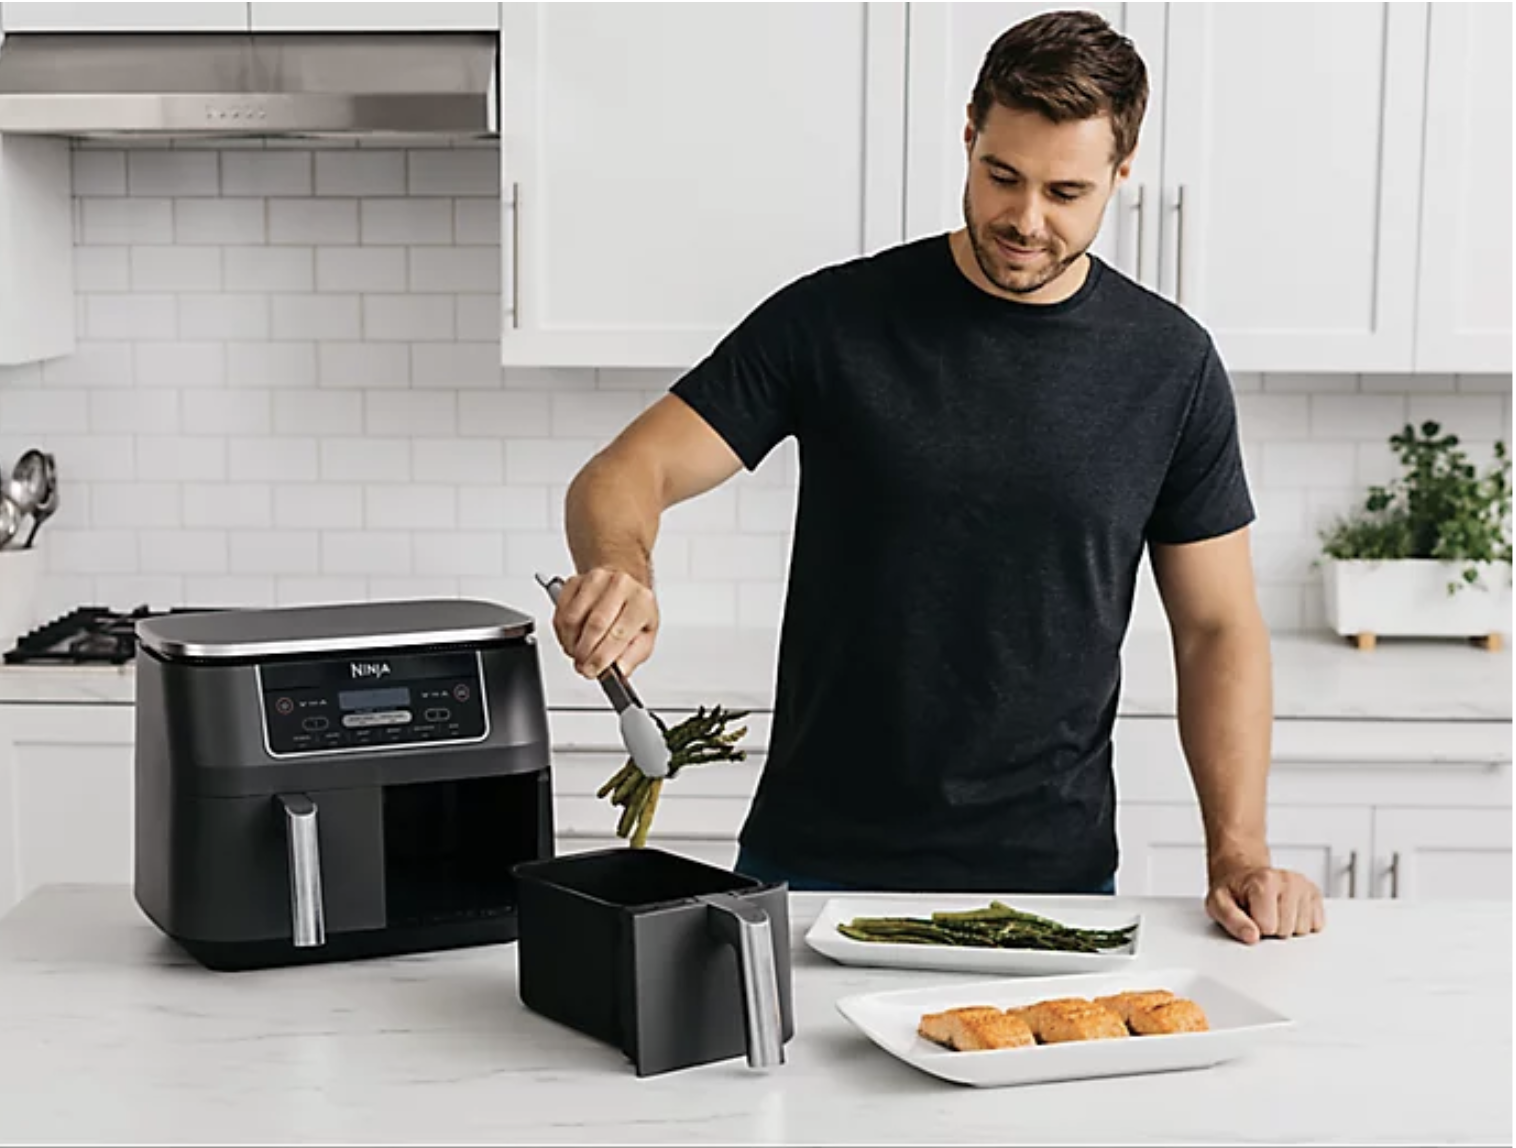 Model taking food out of a black two drawer air fryer with digital display